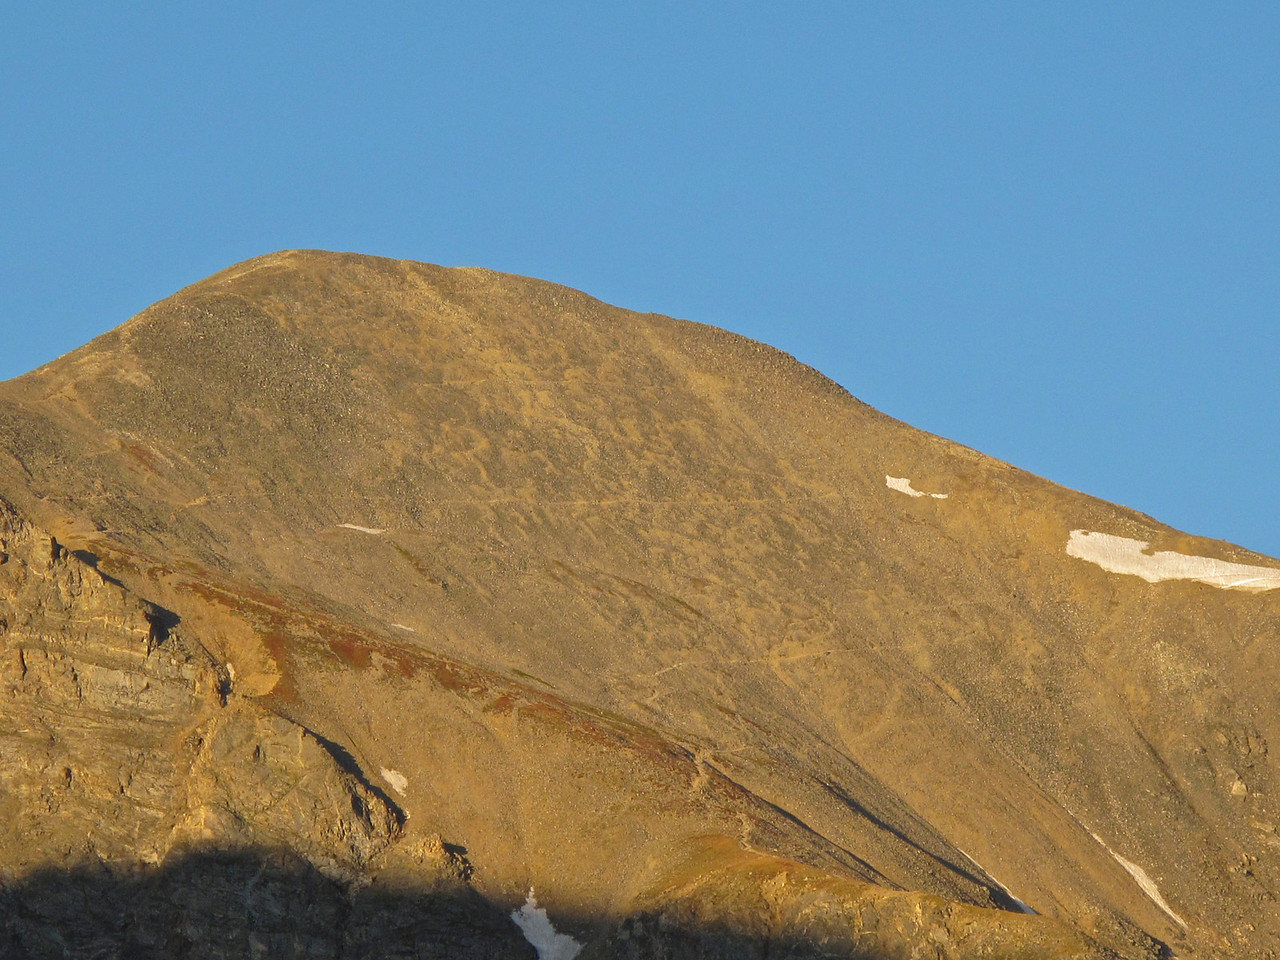 If you look closely, you can see the trail that winds up the side of the mountain.